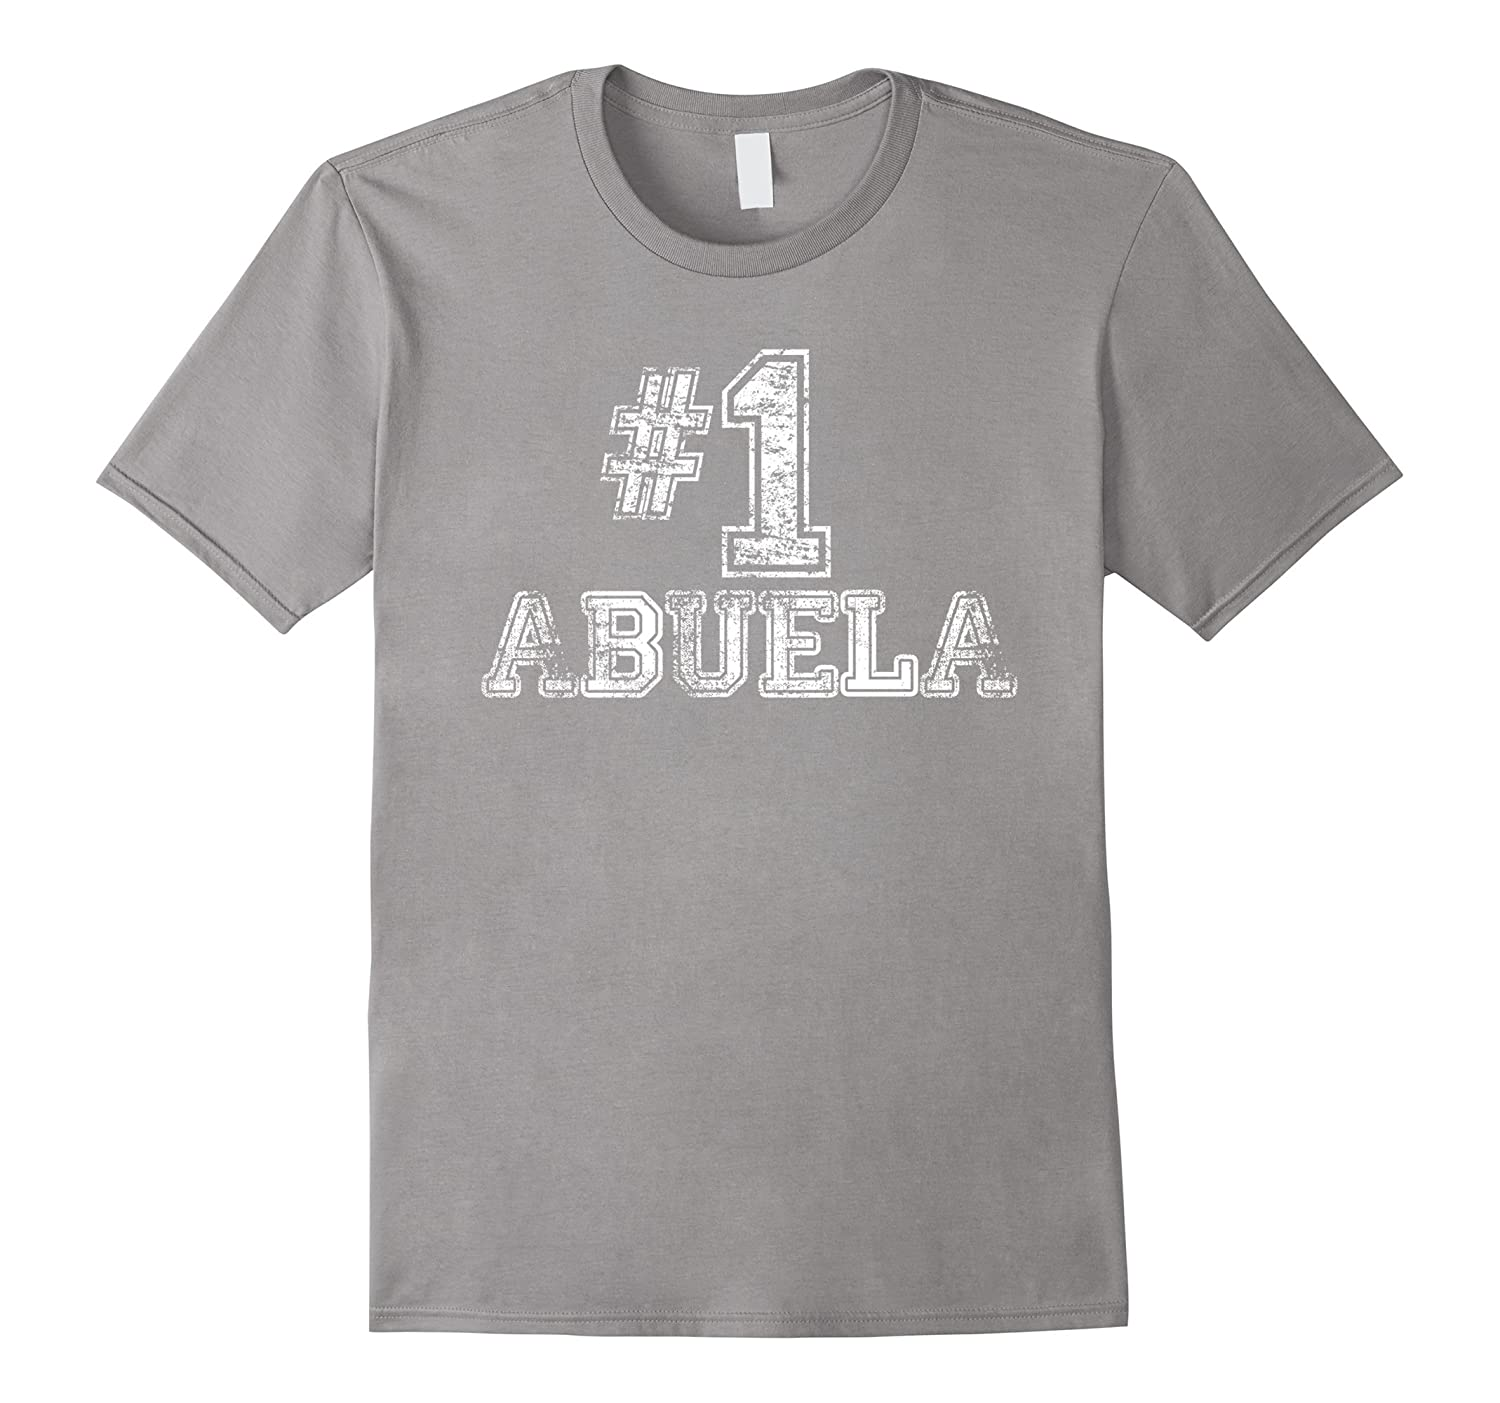 1 Abuela T Shirt - Number One Grandmother Mother Gift Tee-RT